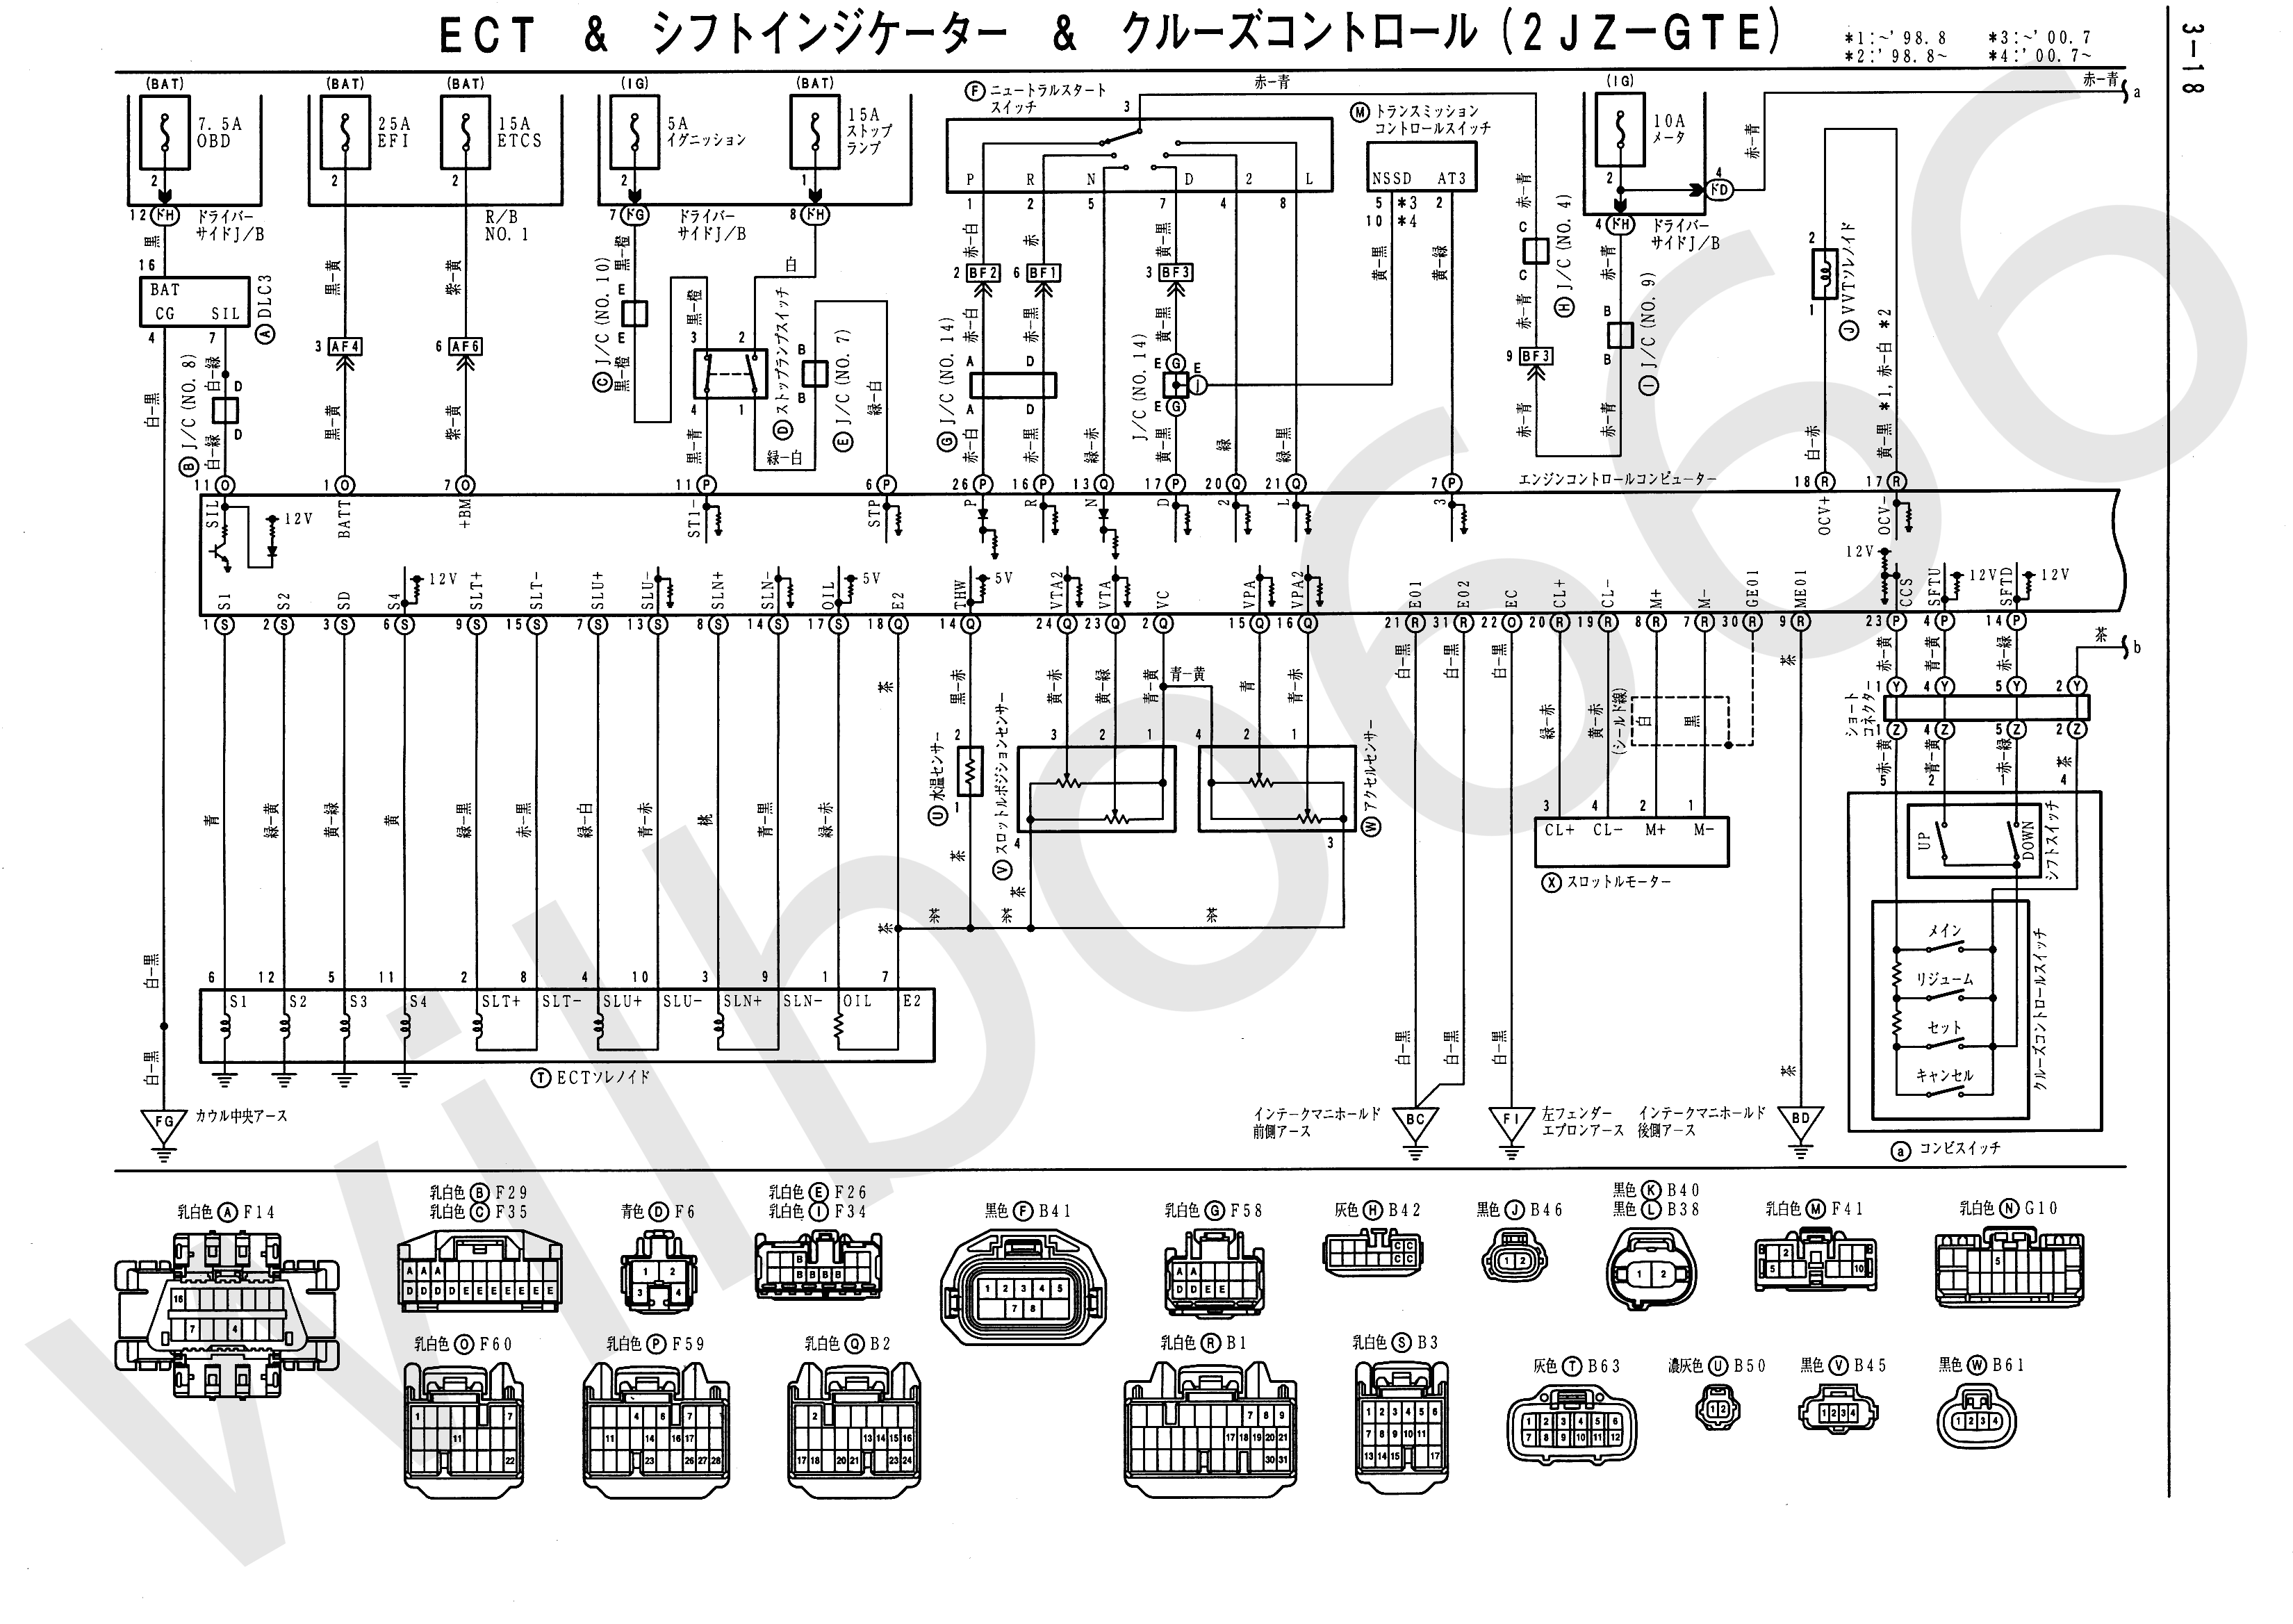 2jz Gte Manual on wiring diagram toyota 1jz gte vvti